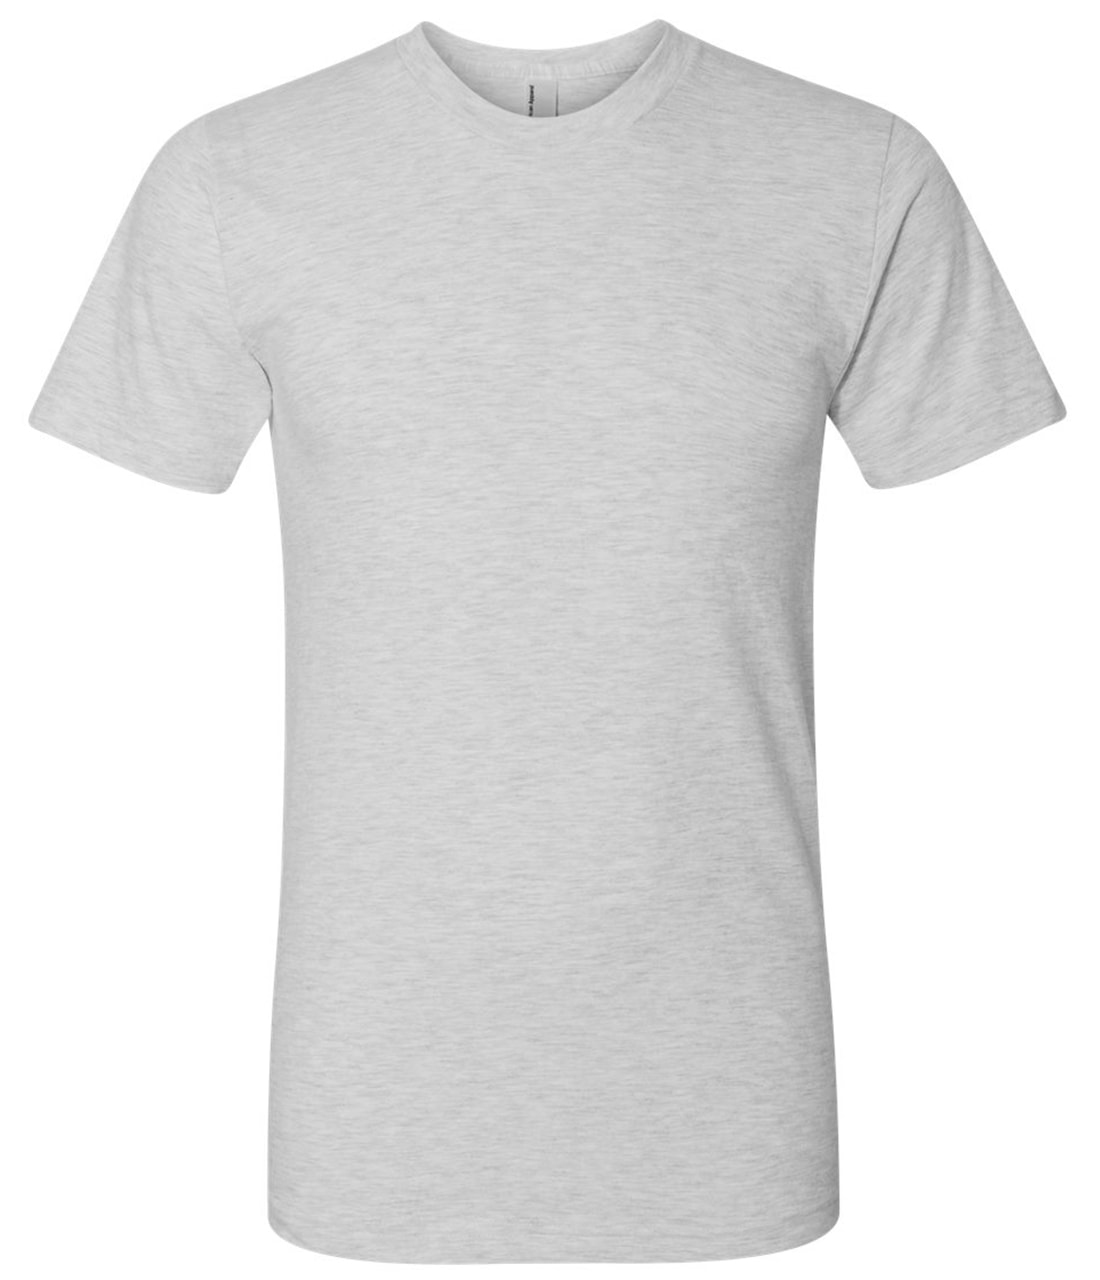 Picture of American Apparel Fine Jersey Short Sleeve T-Shirt